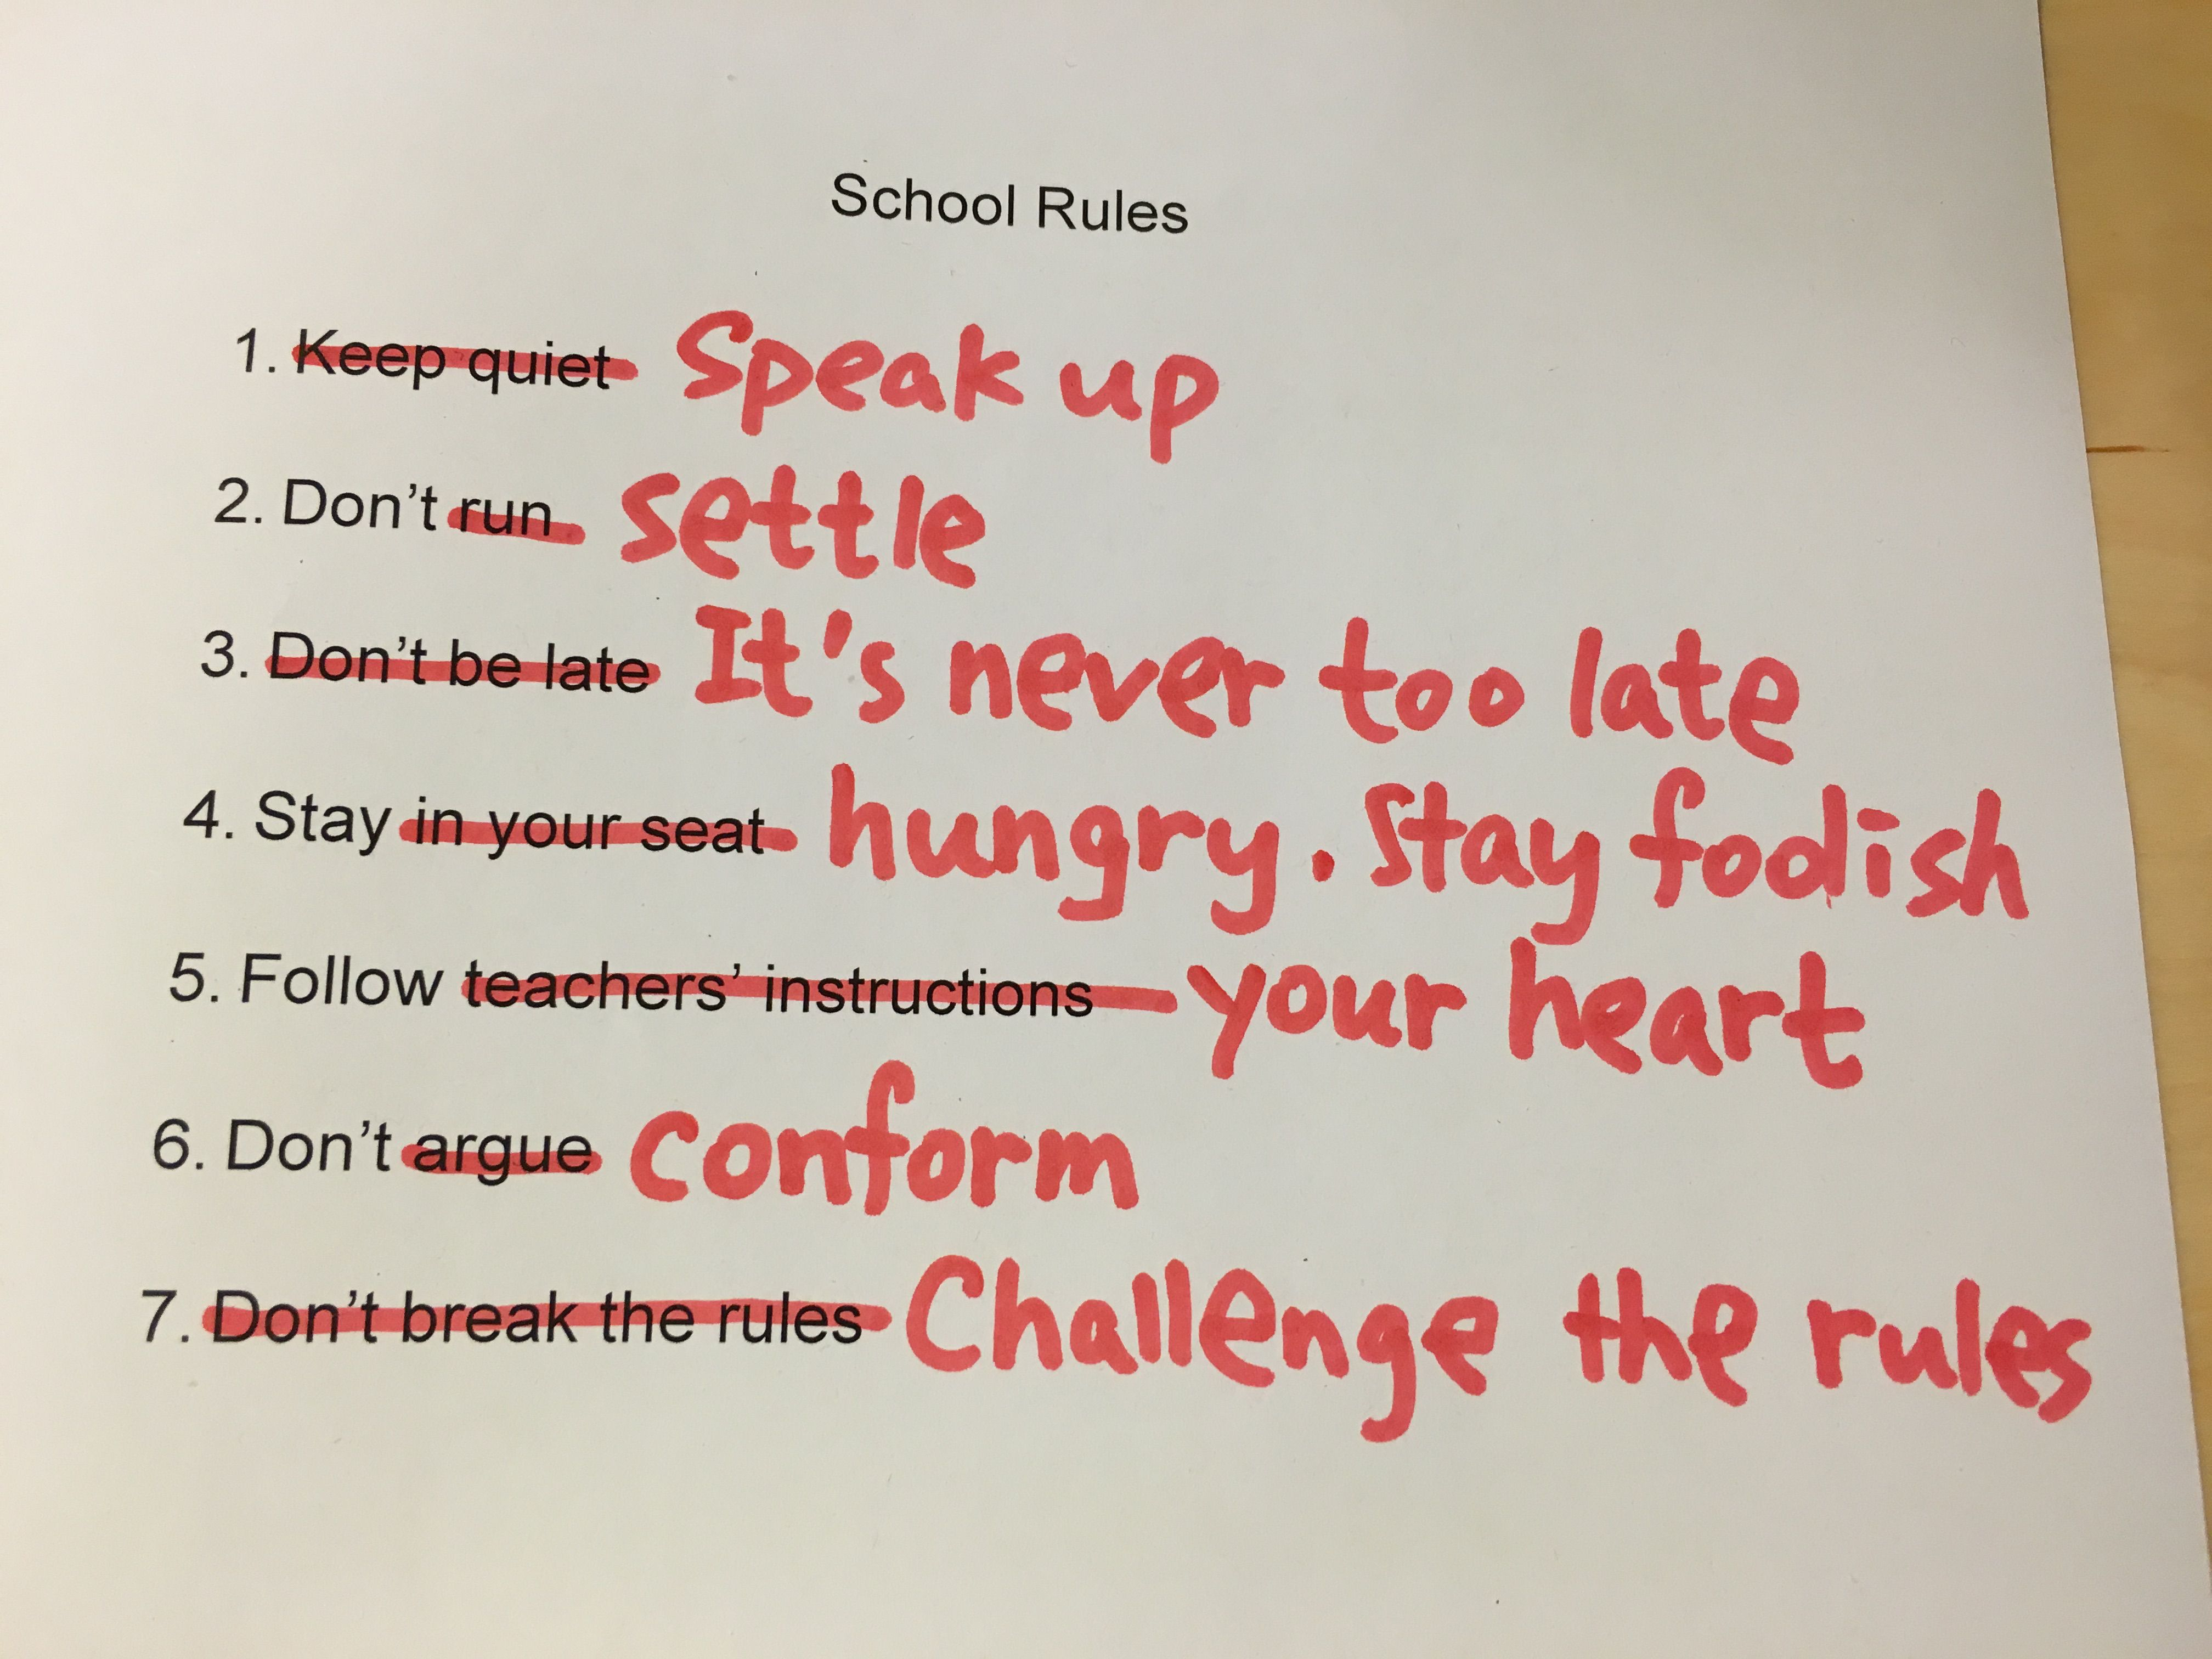 [Image] When school rules are turned into rules of life